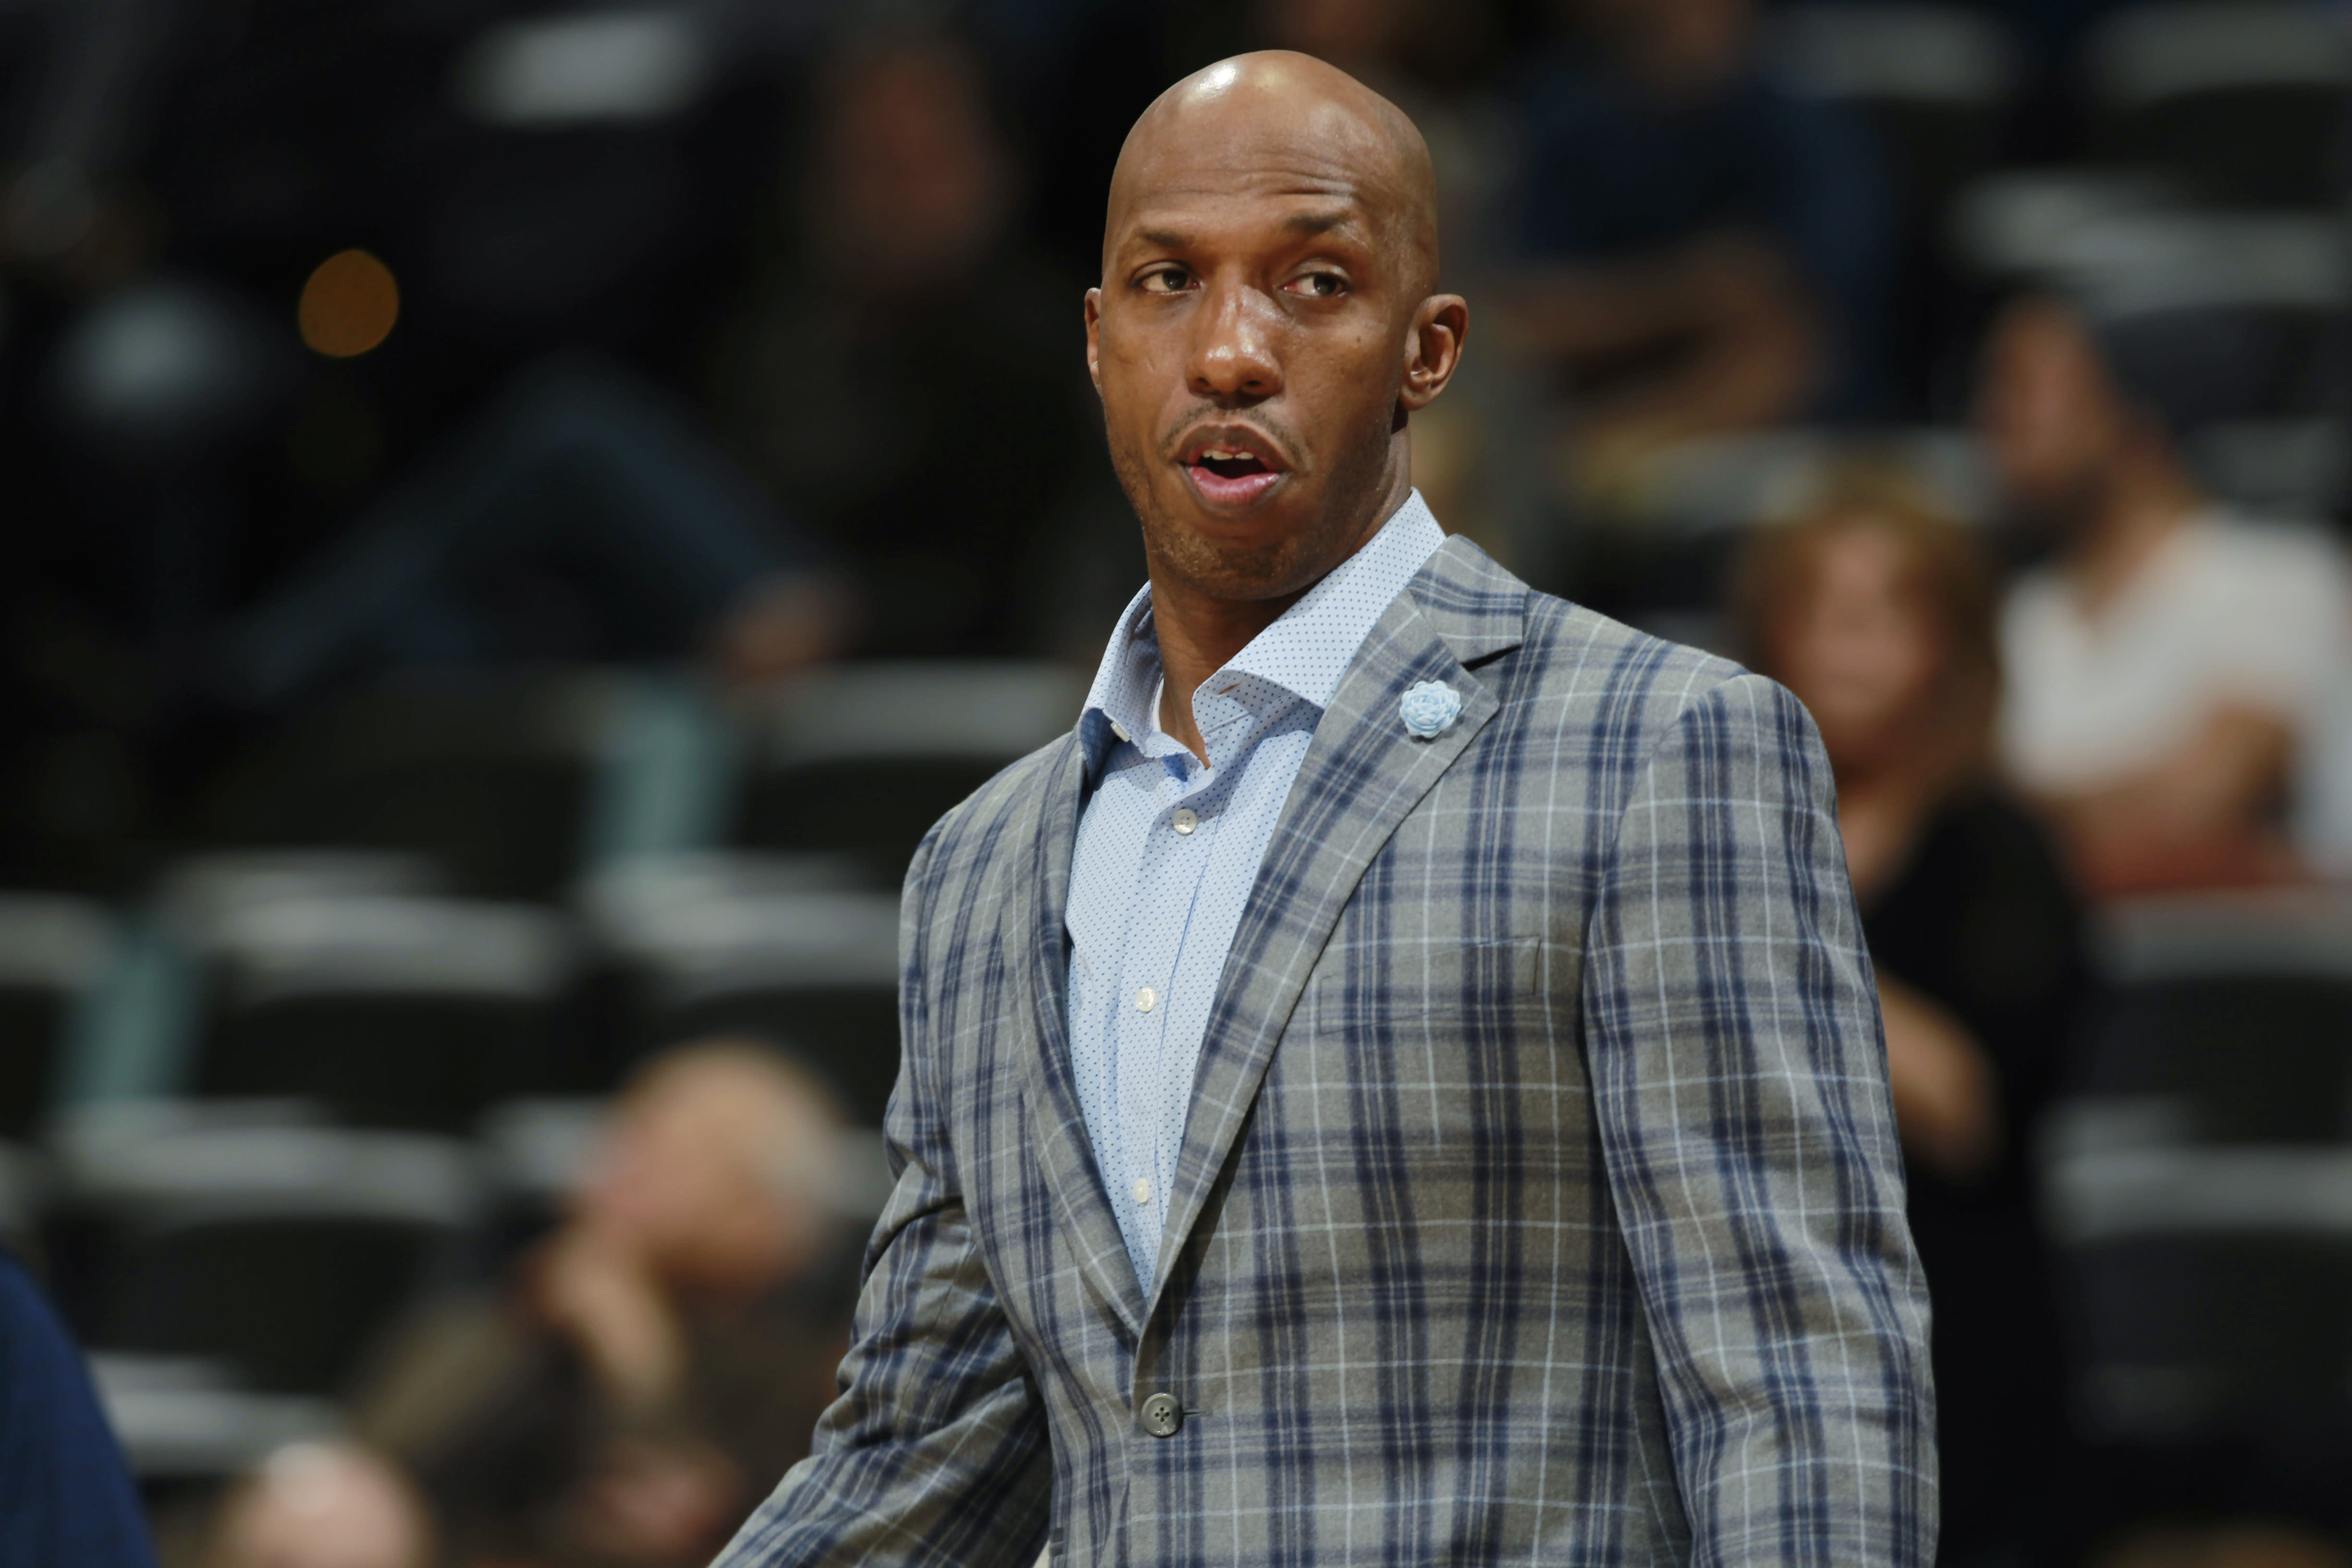 Chauncey Billups on why Carmelo Anthony isn't in the NBA: 'Scoring 30 meant too much to Melo'